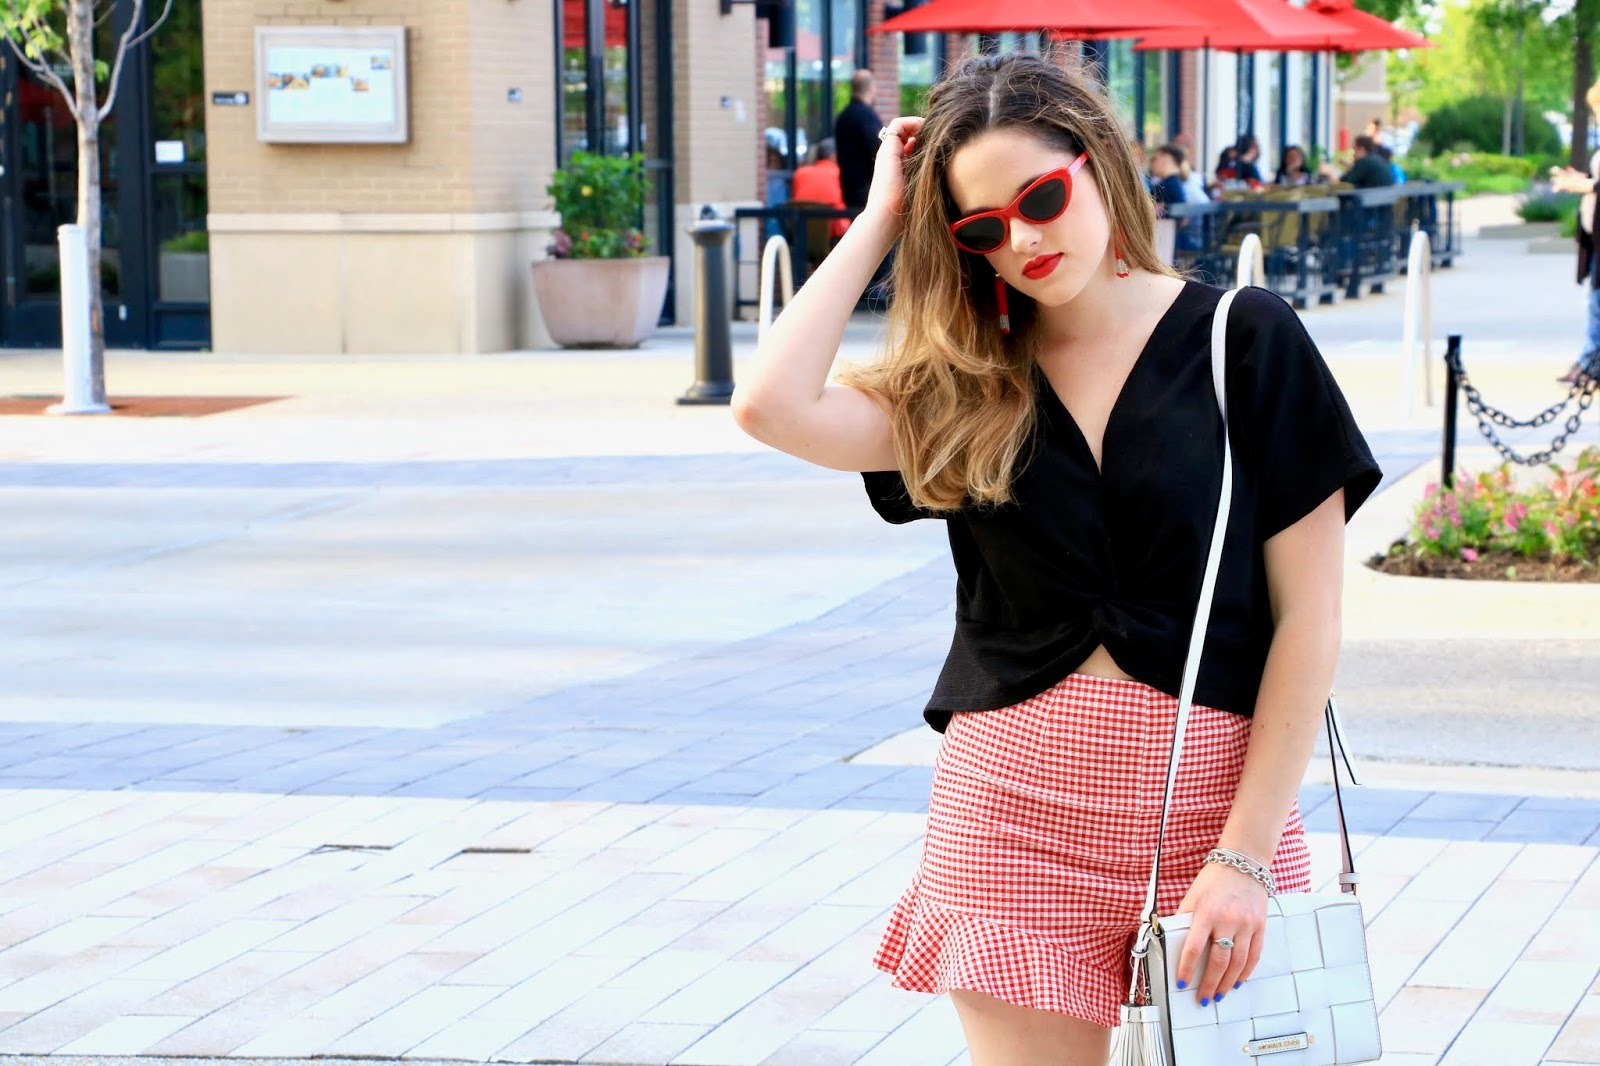 Nyc fashion blogger Kathleen Harper showing how to wear red retro sunglasses